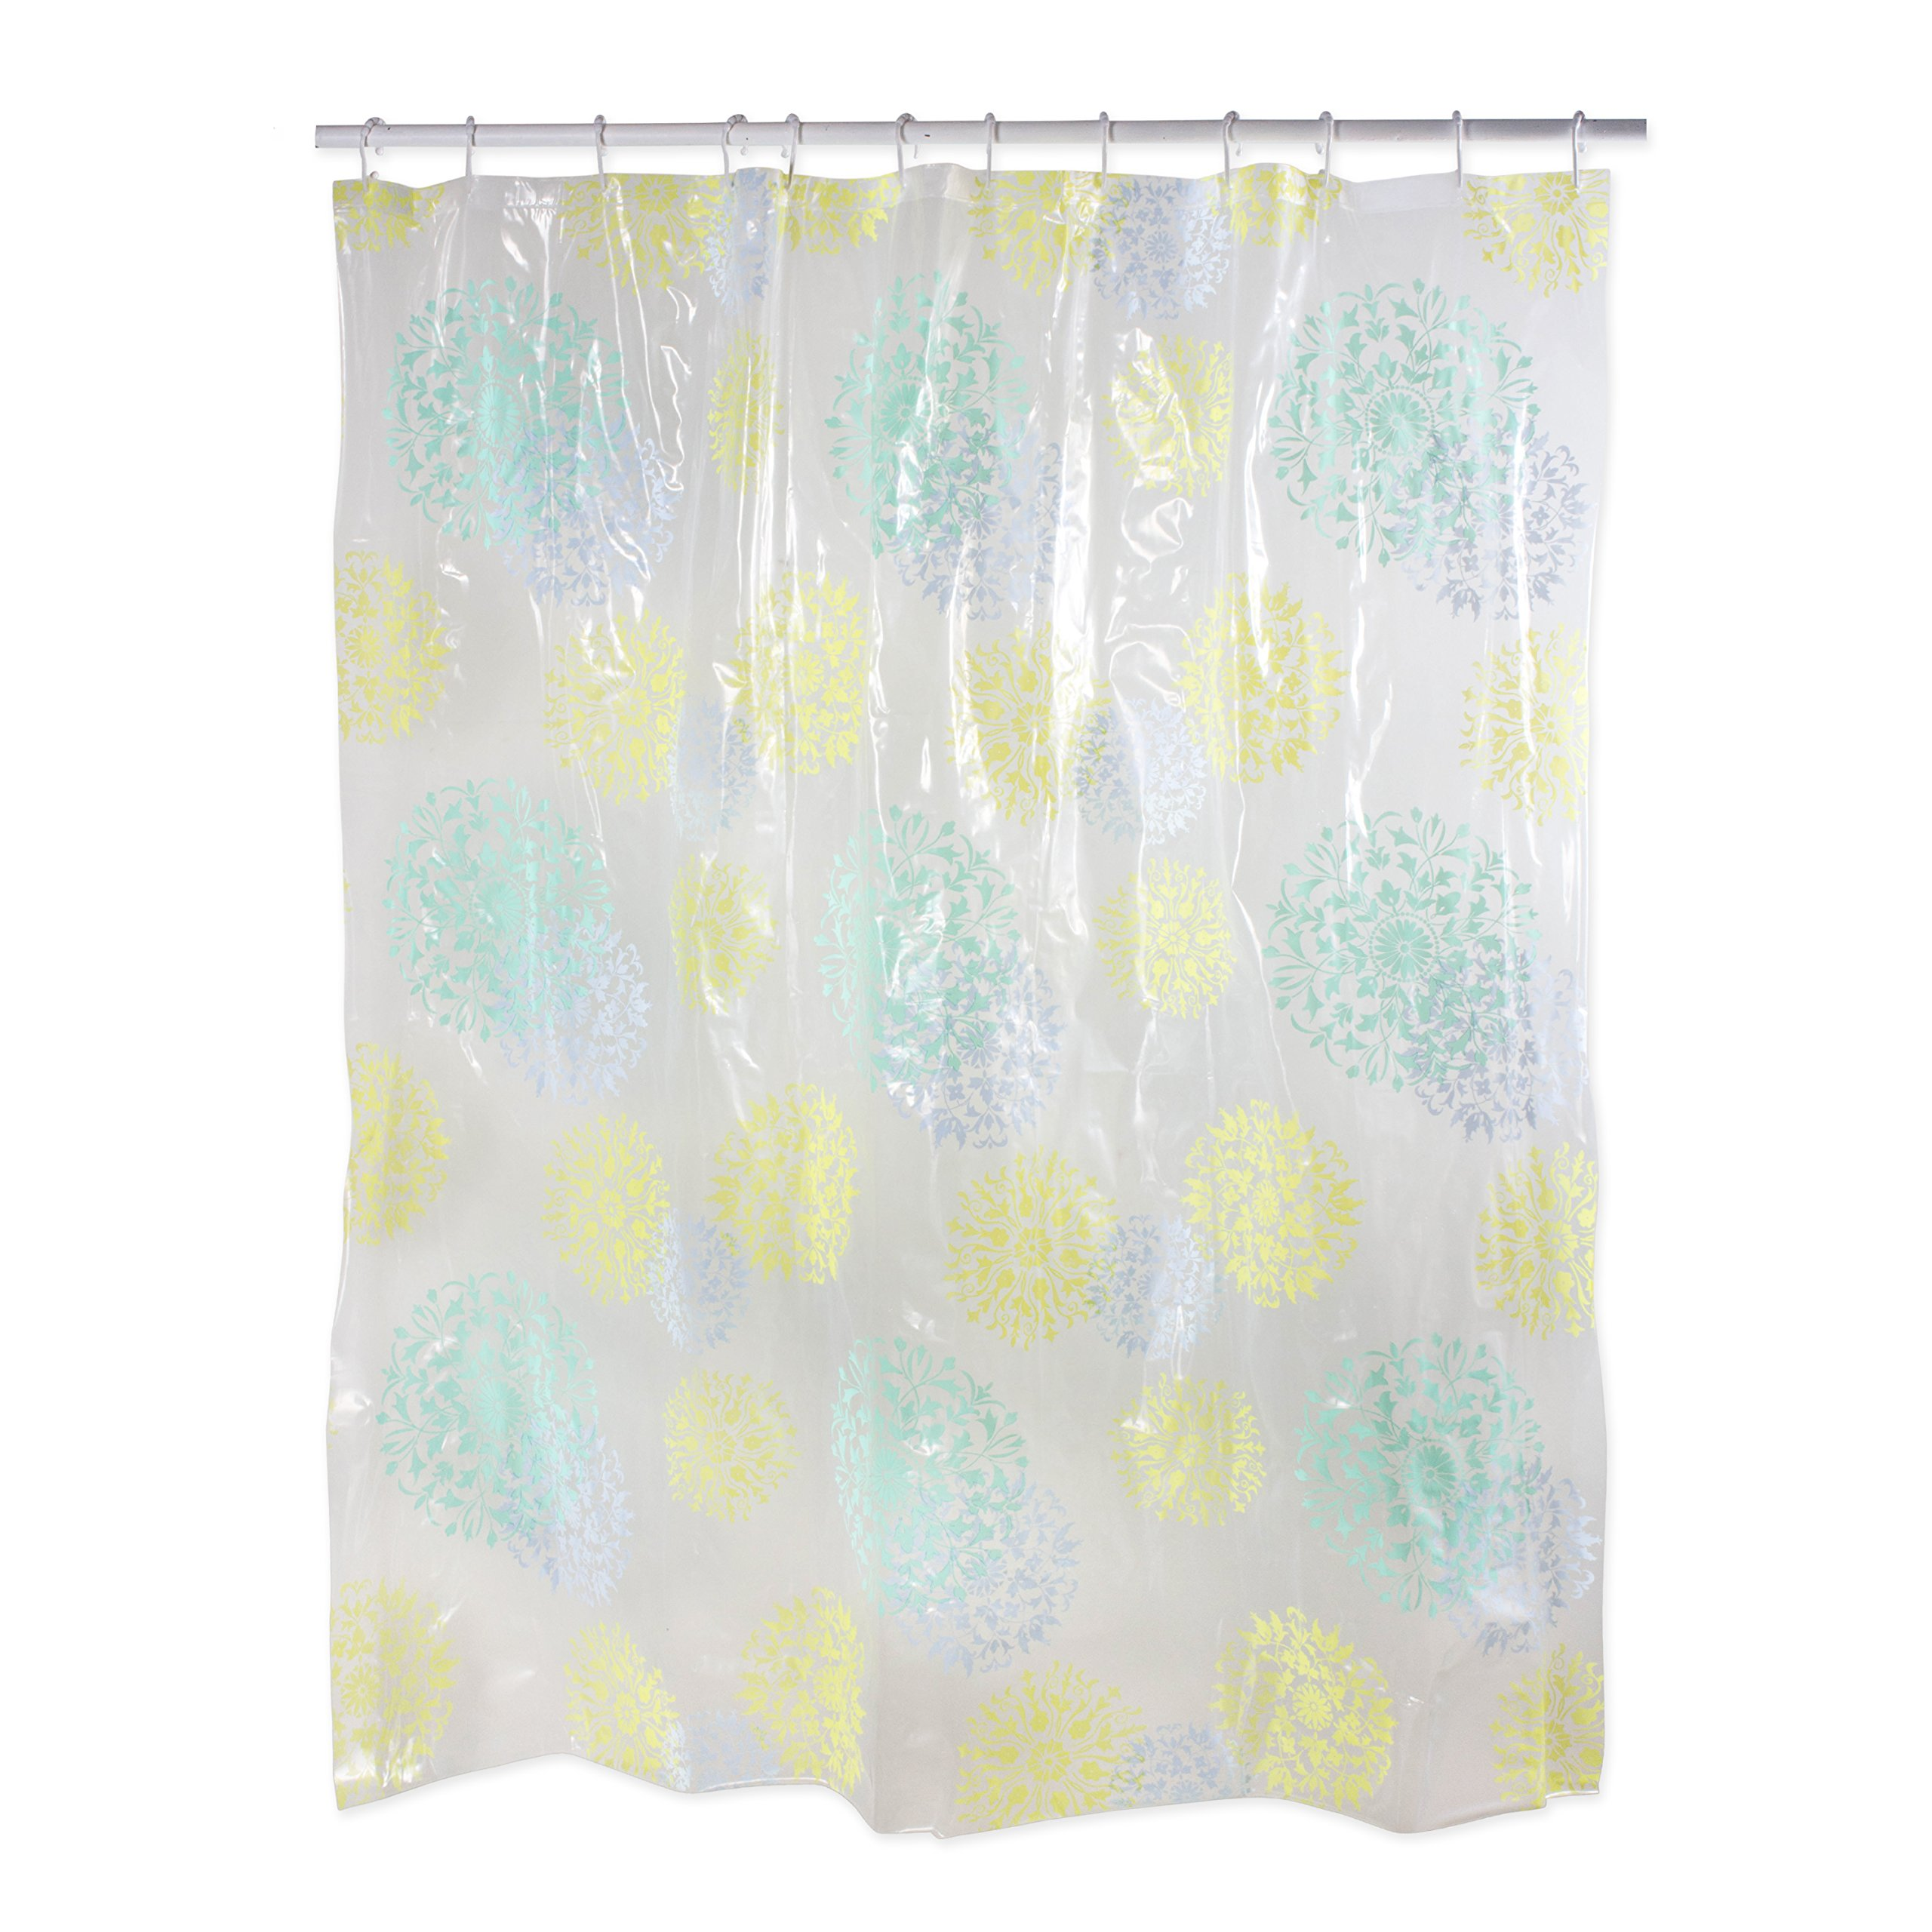 Polyester/PEVA Shower Curtain 70x72'', Antibacterial and Mildew Resistant, Waterproof/Water-Repellent to Resist Germs, Bacteria & Mold for Everyday Use-Botanical by J&M Home Fashions